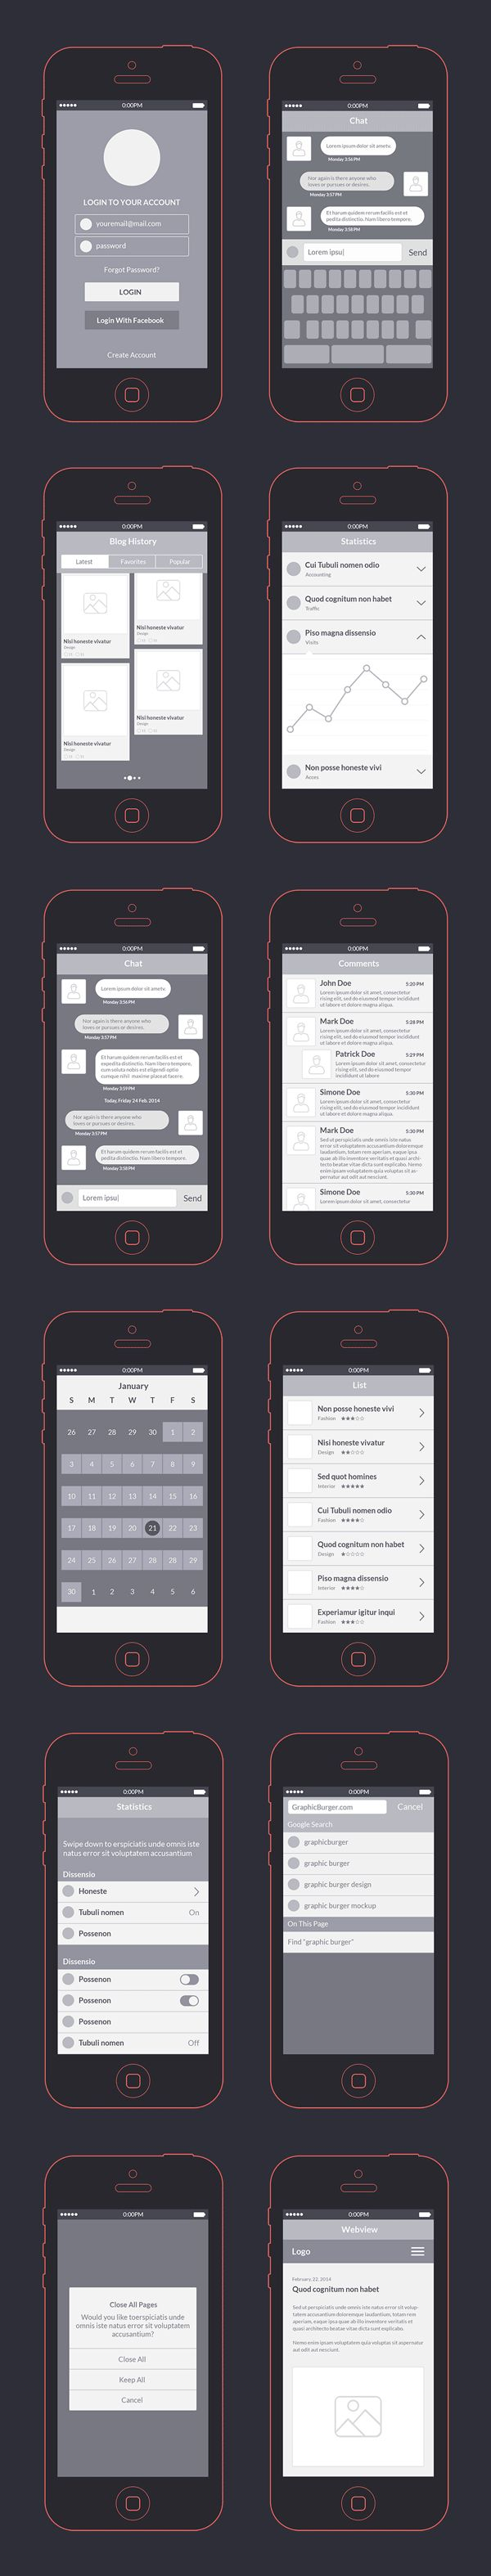 App Wireframes Kit | GraphicBurger